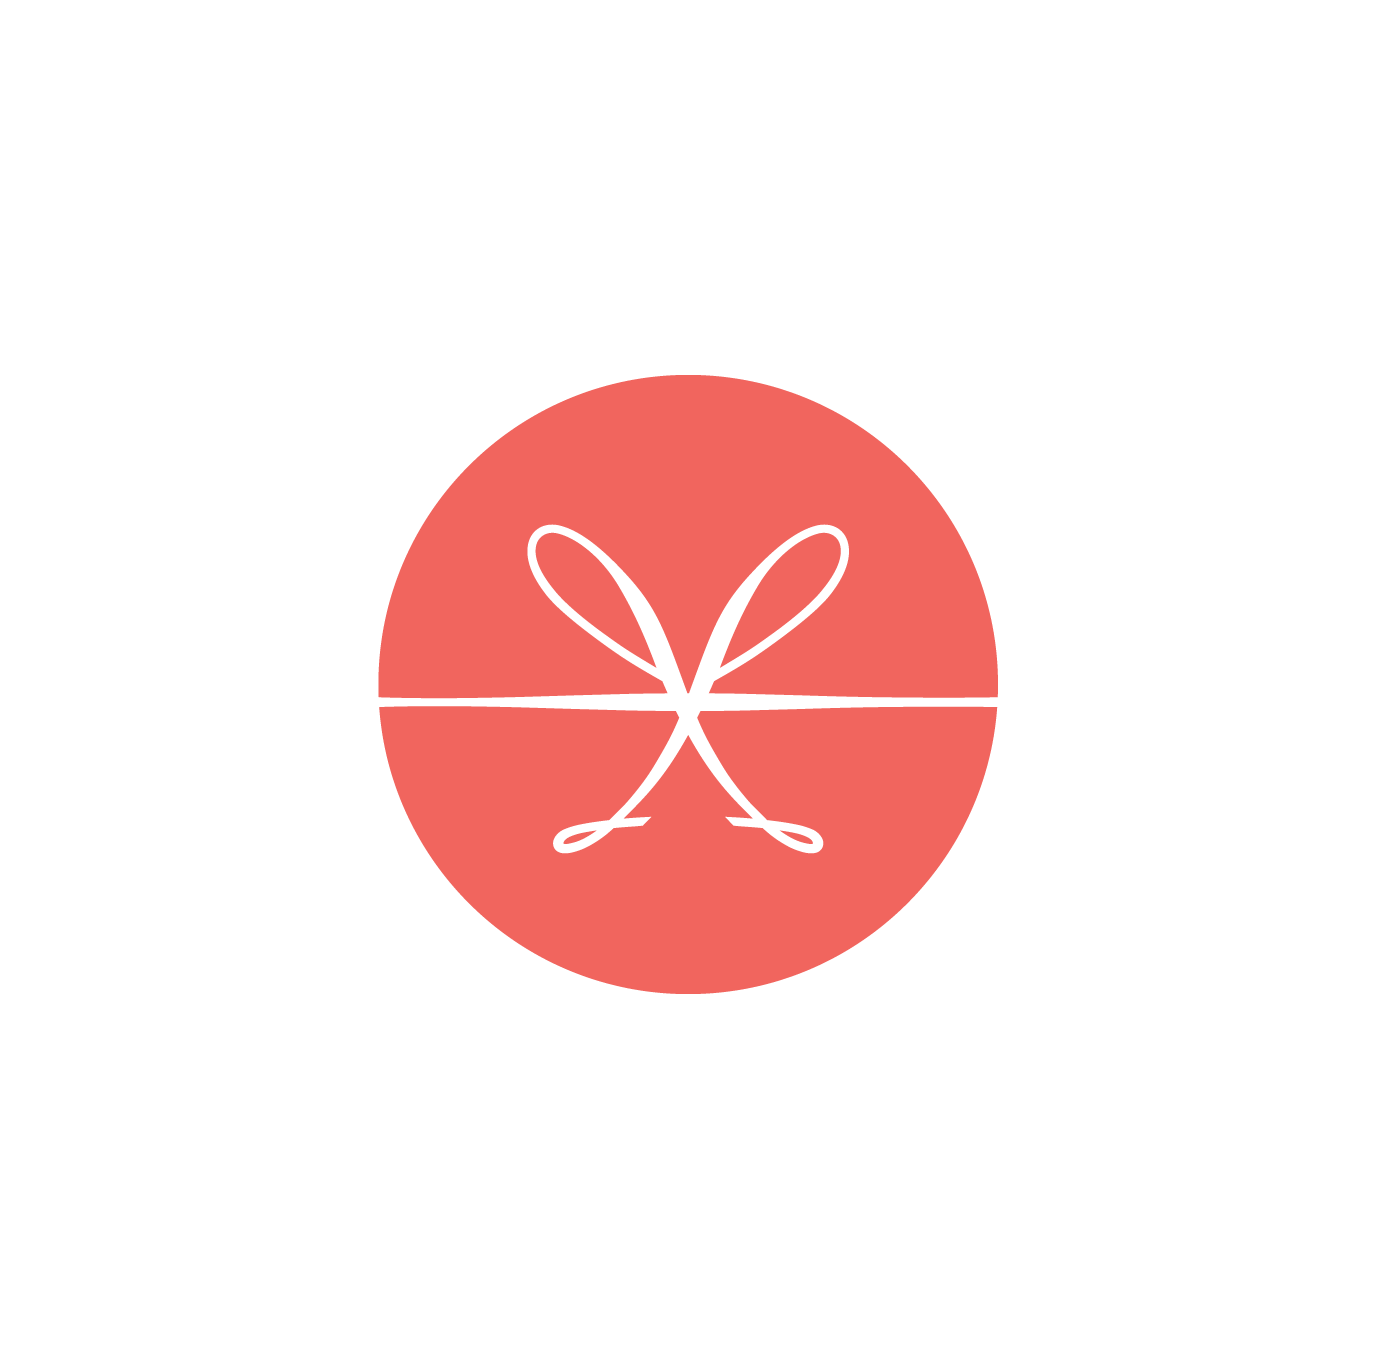 Joan Julian / Insights + Strategy by Design